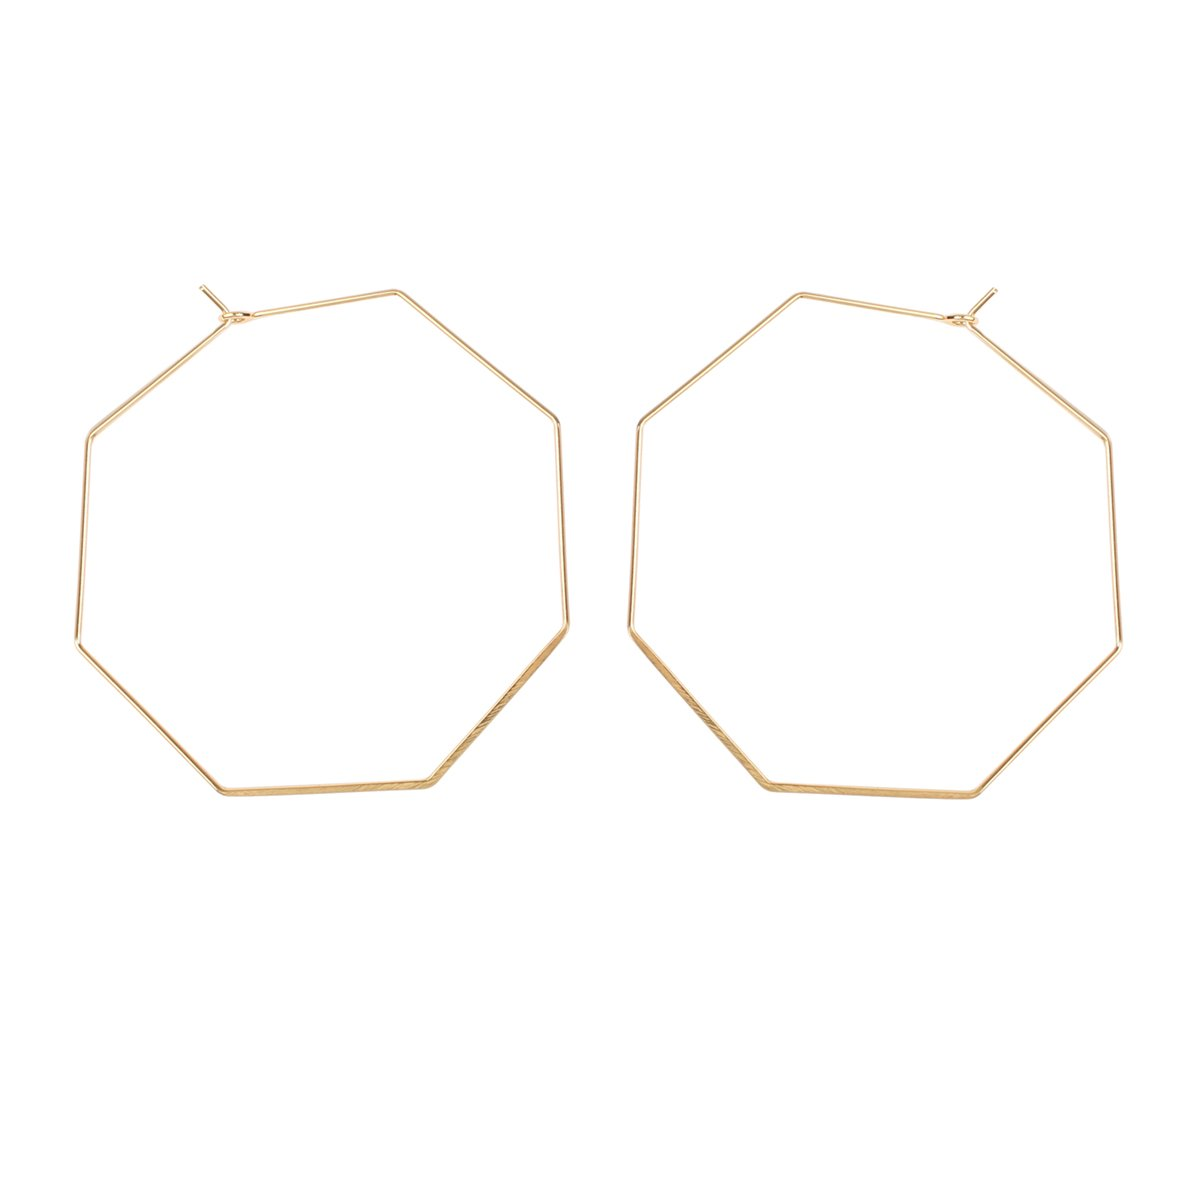 RIAH FASHION Lightweight Geometric Hoop Earrings - Classic Brass Wire Threader Dangles (Octagon Gold)